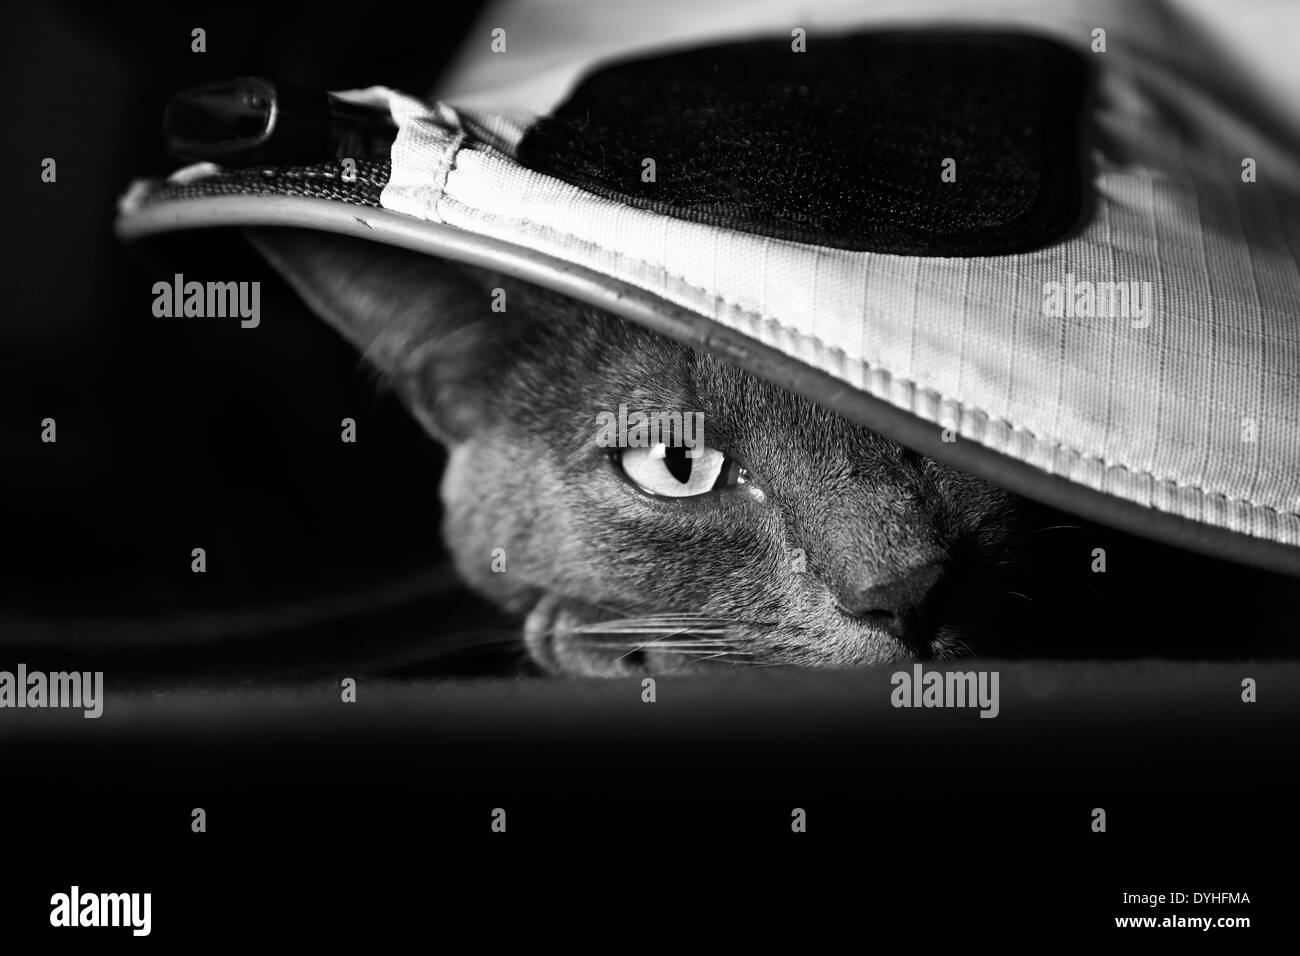 A gray cat hidden under a bag - Stock Image